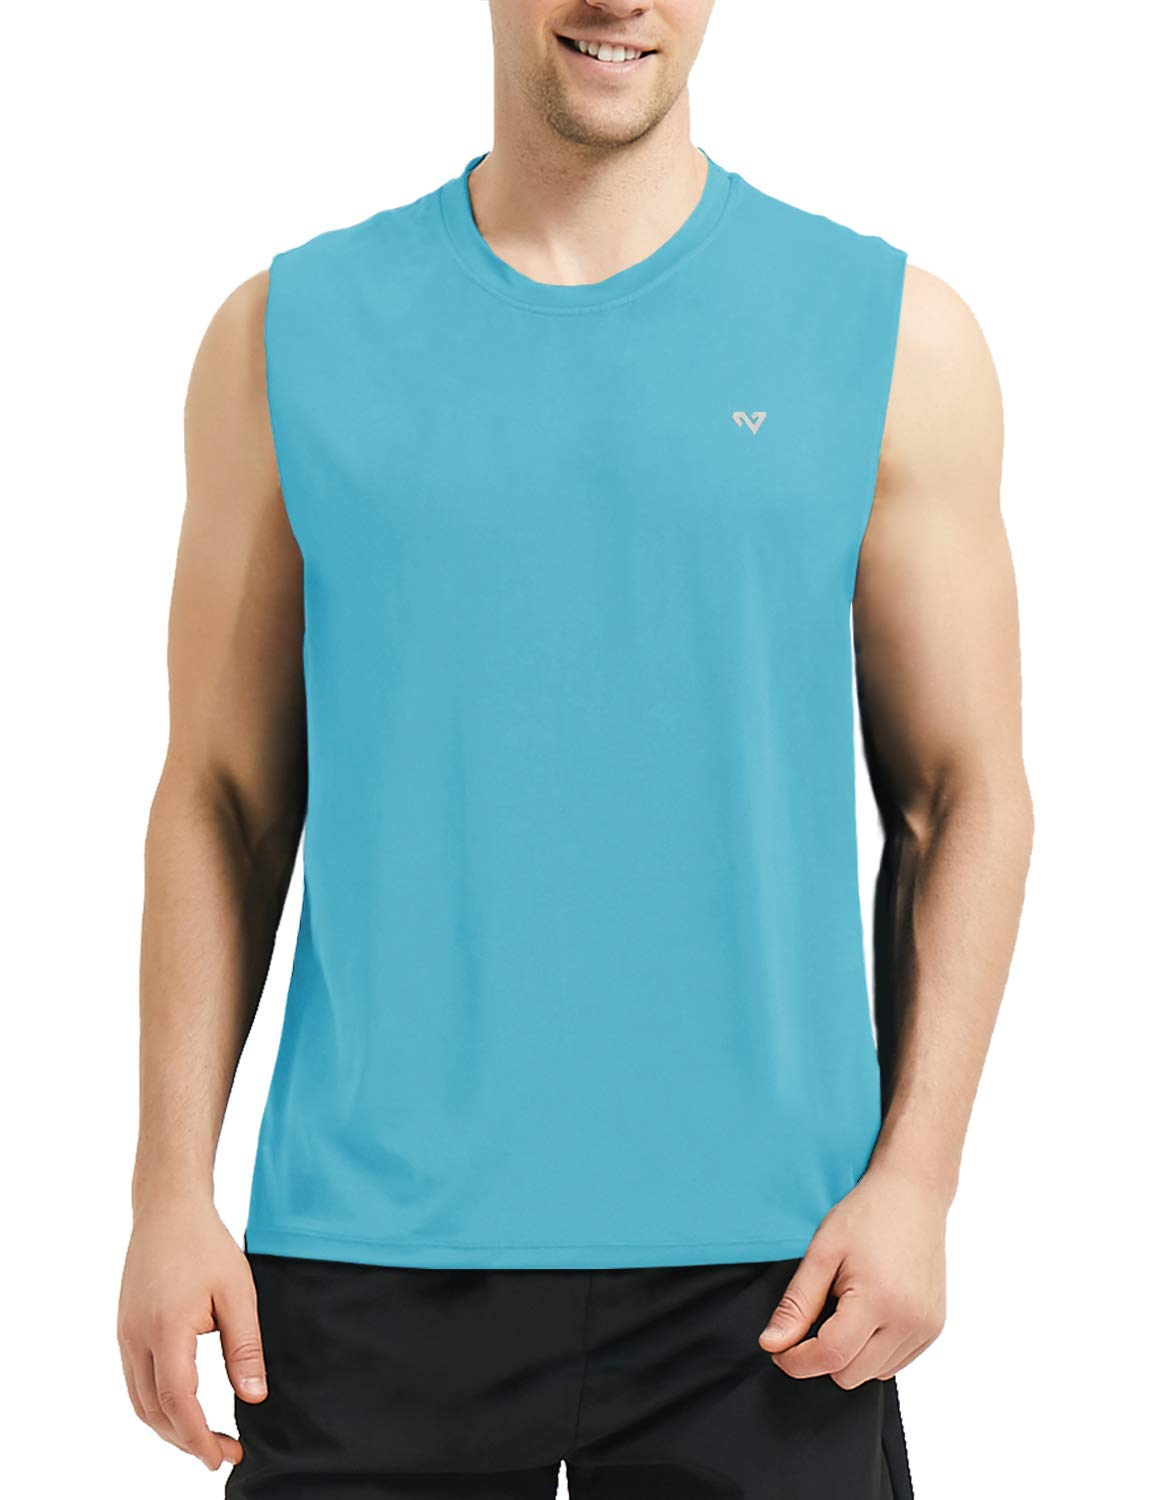 Roadbox Men's Performance Sleeveless Workout Muscle Bodybuilding Tank Tops Shirts Bright Blue by Roadbox